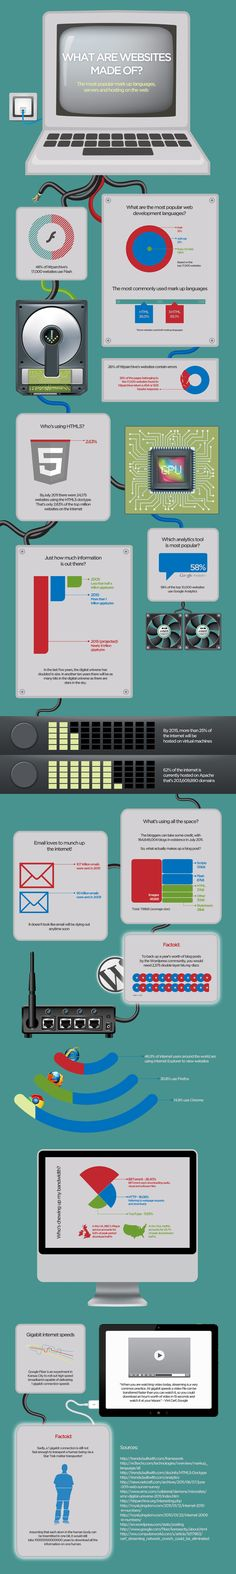 What Are Websites Made Of? [Infographic]